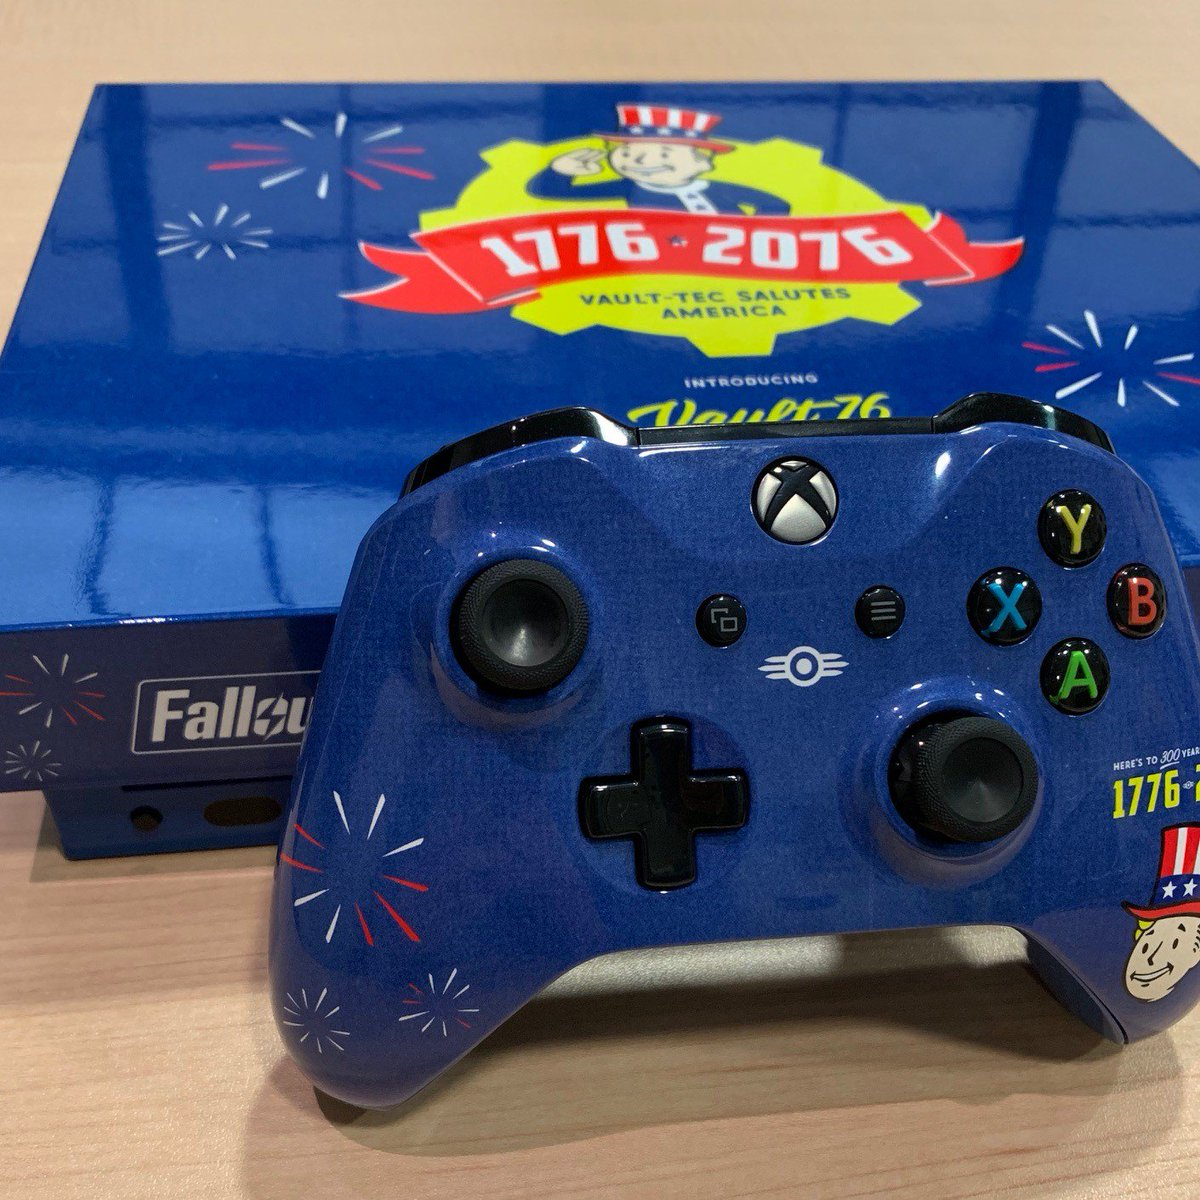 RT to enter to win a #Fallout76 Tricentennial Xbox One X!  Let's keep this #ReclamationDay Celebration going!  Official Rules: https://t.co/ybETPKGsRr https://t.co/Ir8ea8499Z